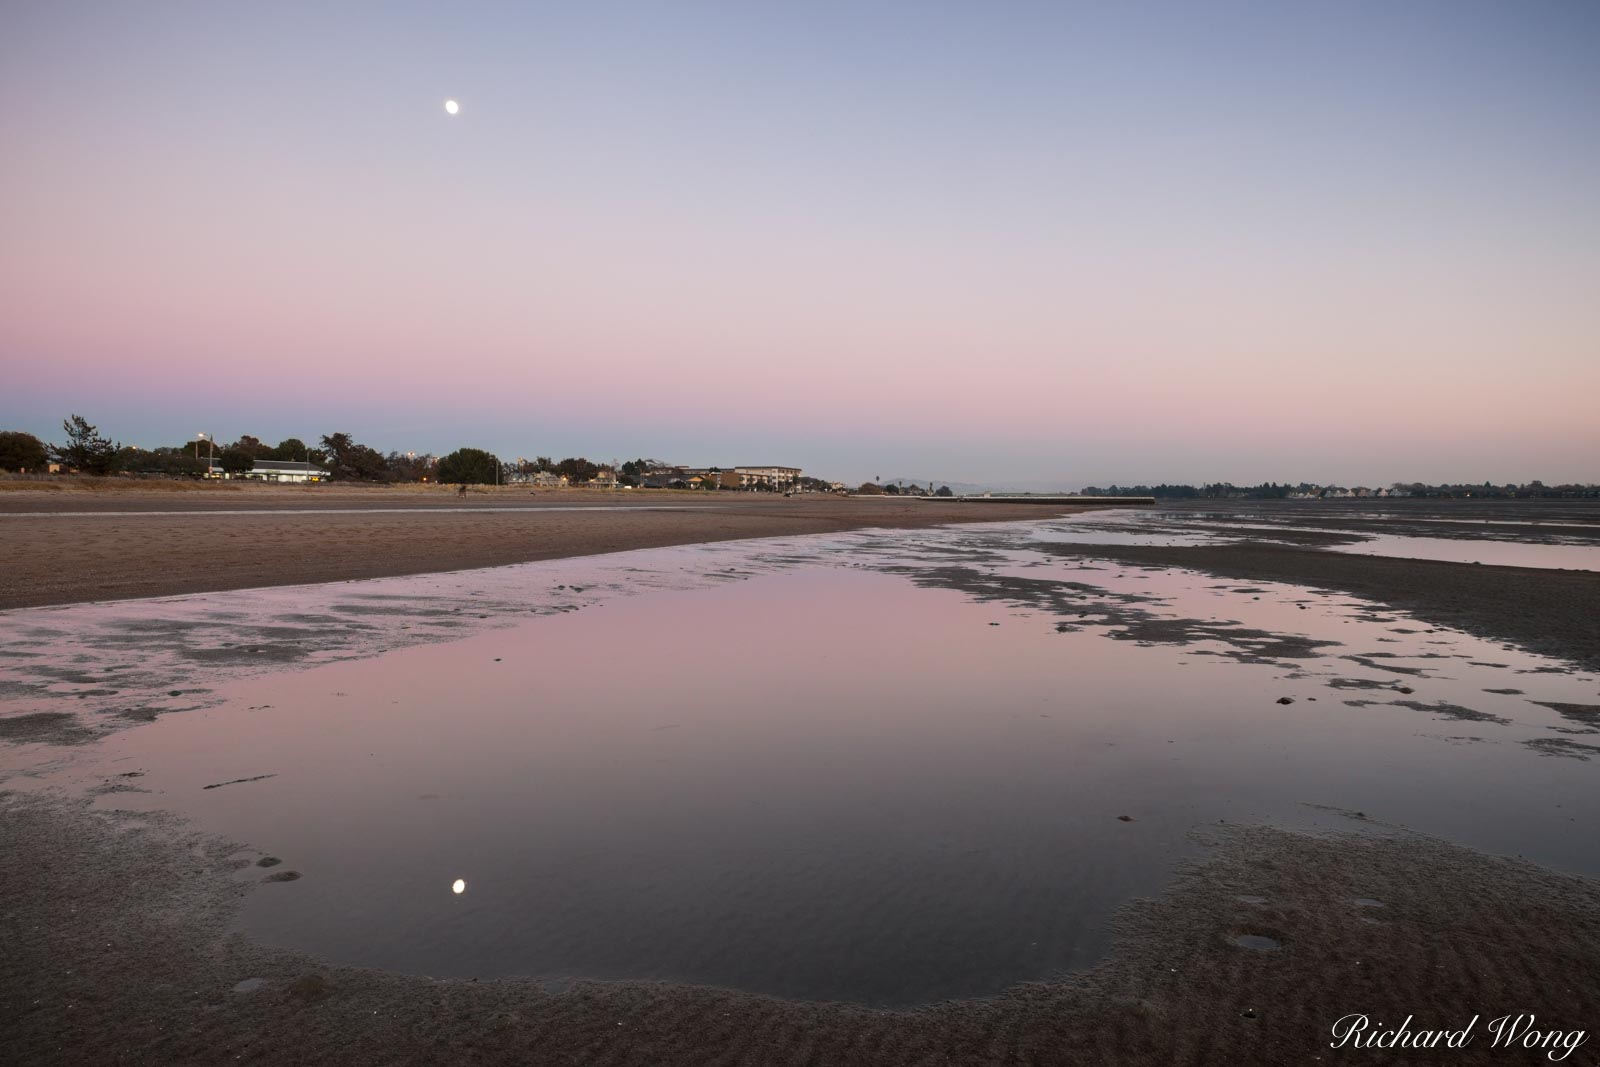 alameda, bay area, beaches, dusk, earth shadow, evening, landscape, low tide, moon, moonrise, night, northern california, outdoors, outside, reflection, robert crown memorial state beach, san francisc, photo